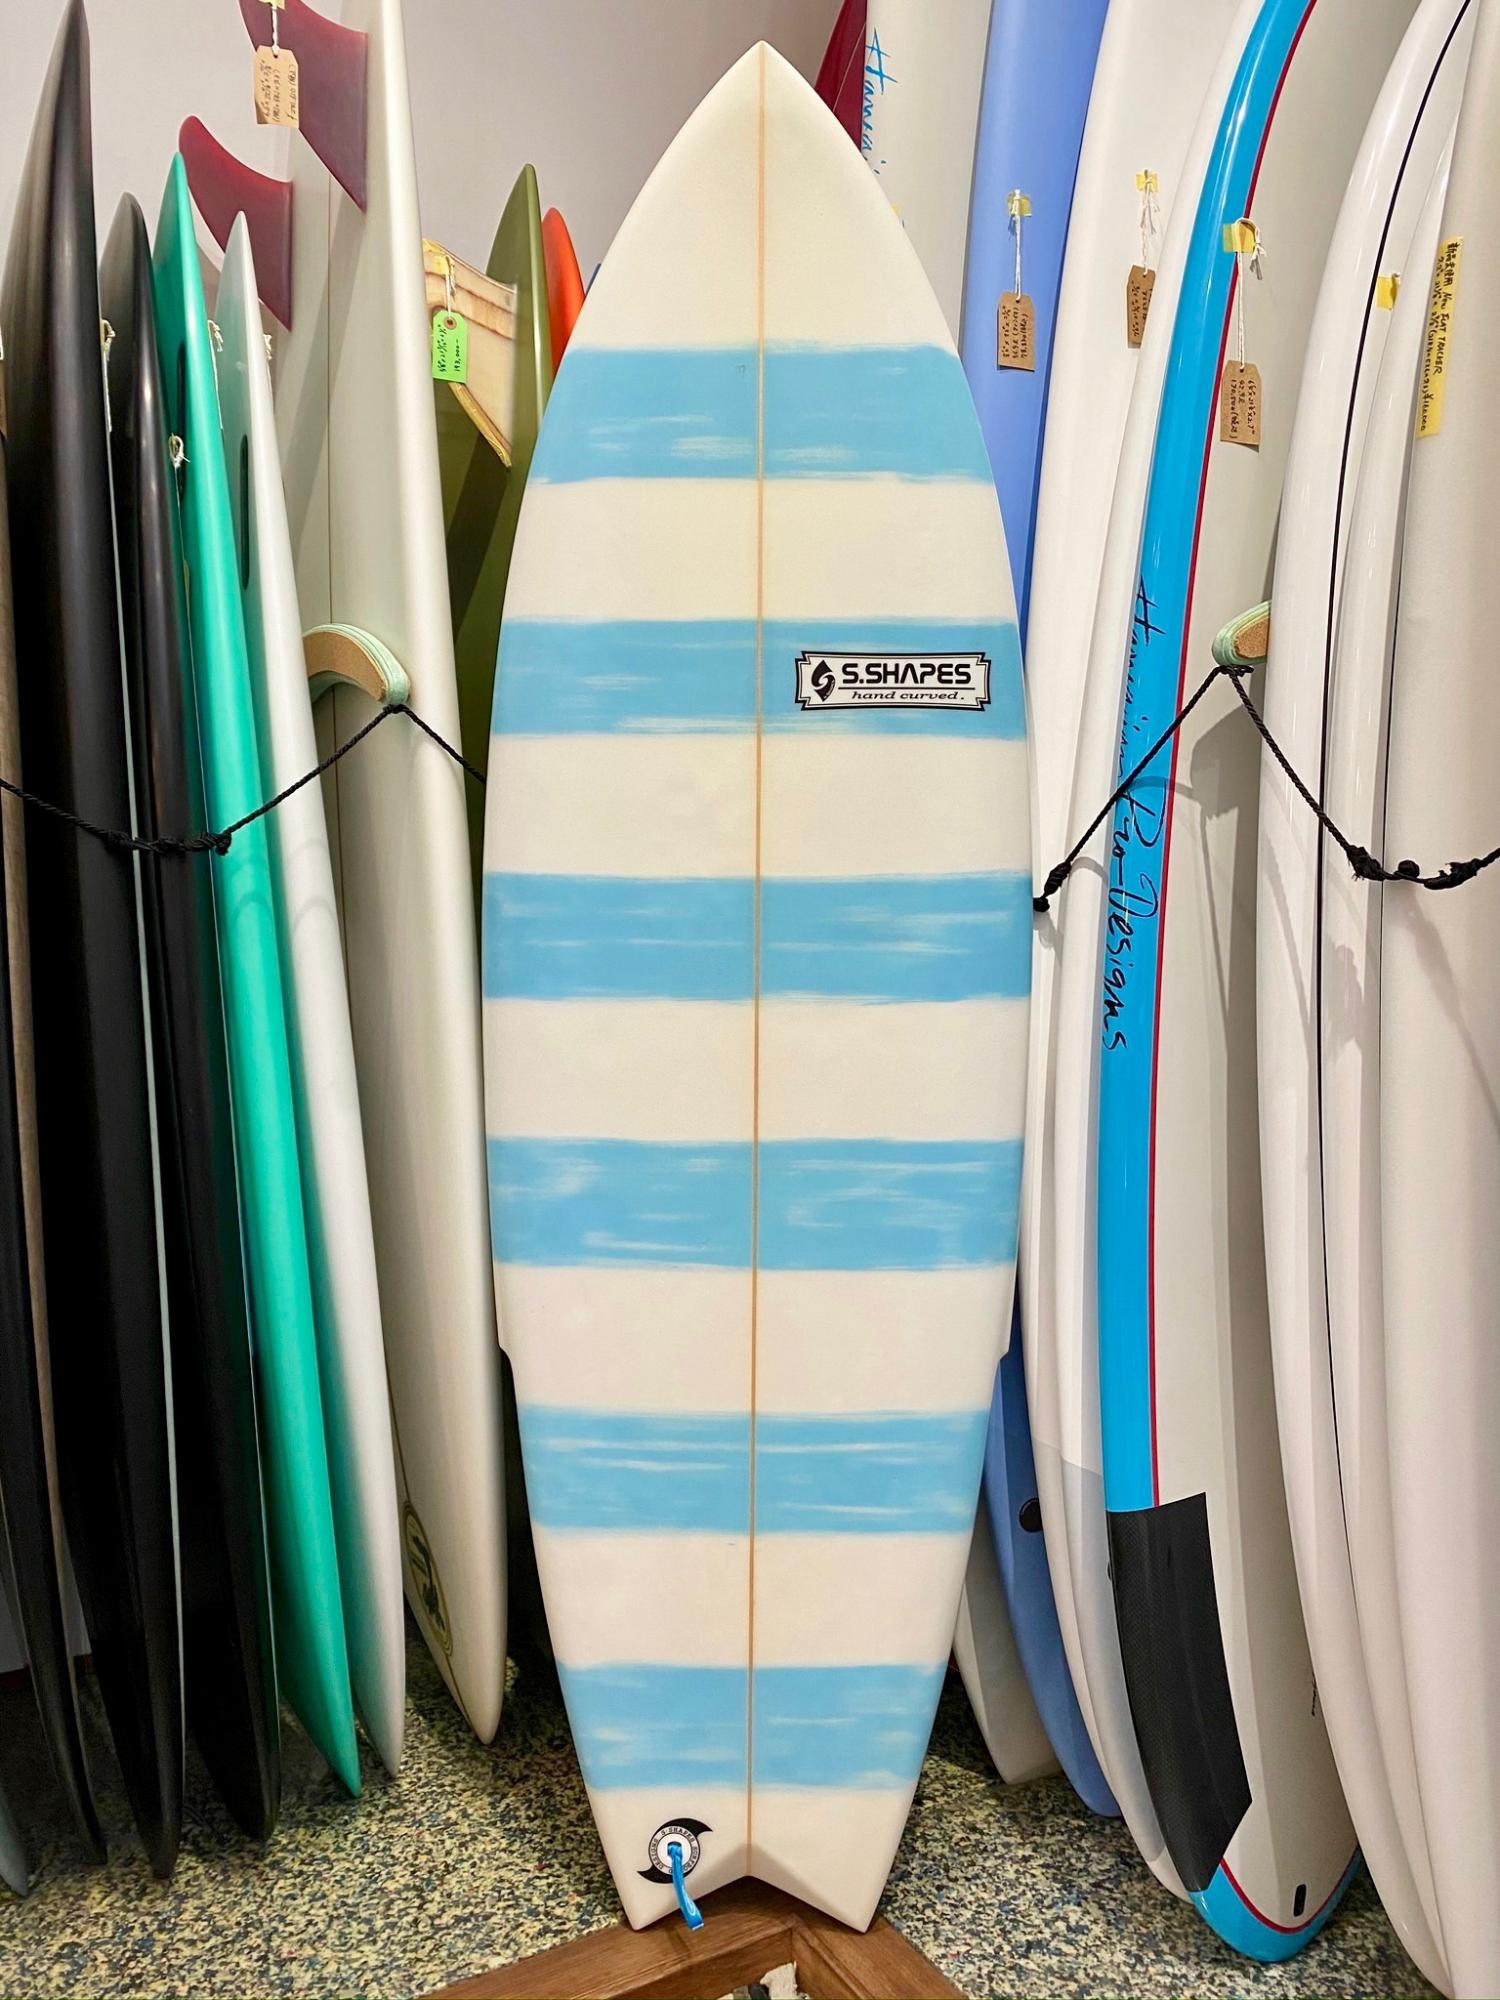 USED BOARDS (S-SHAPES STINGER5.6)